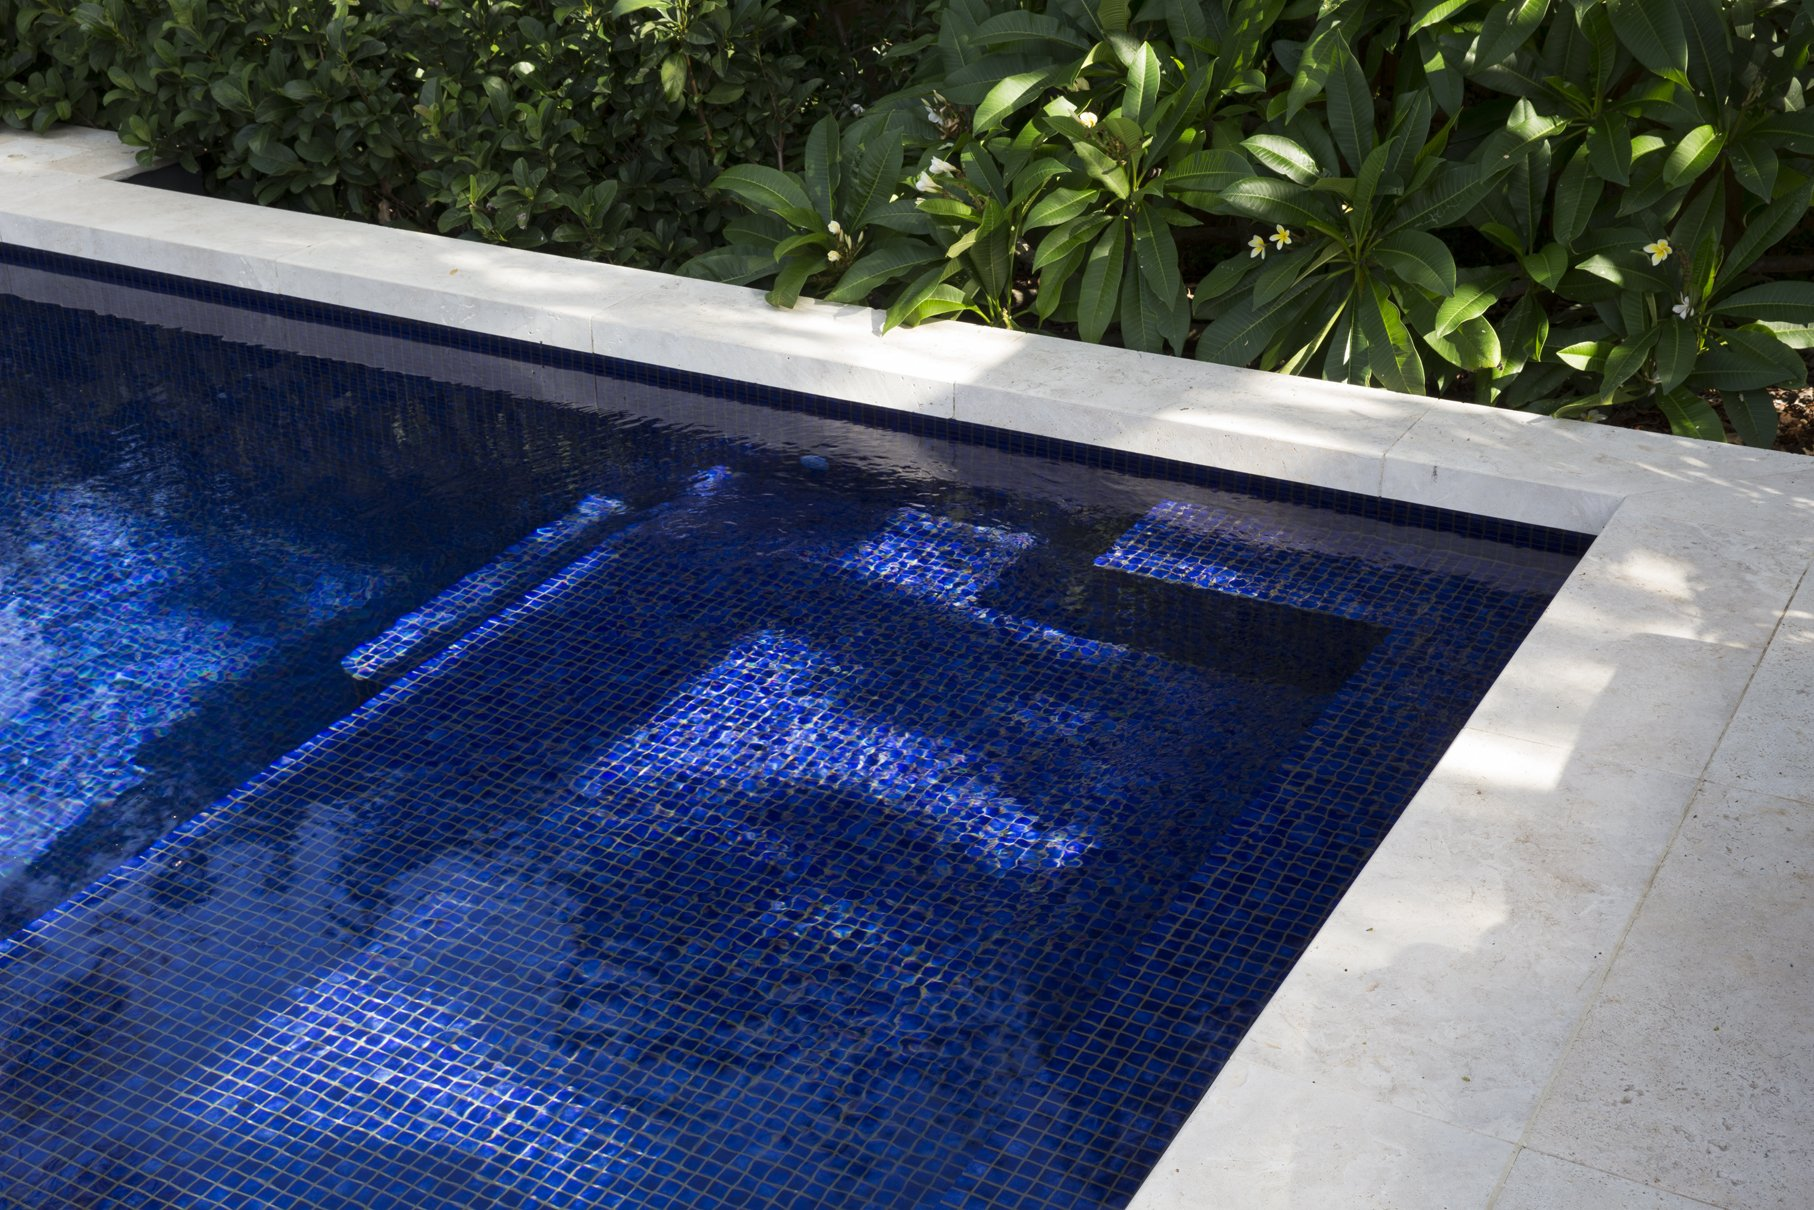 Above ground pool with greenery surrounding it